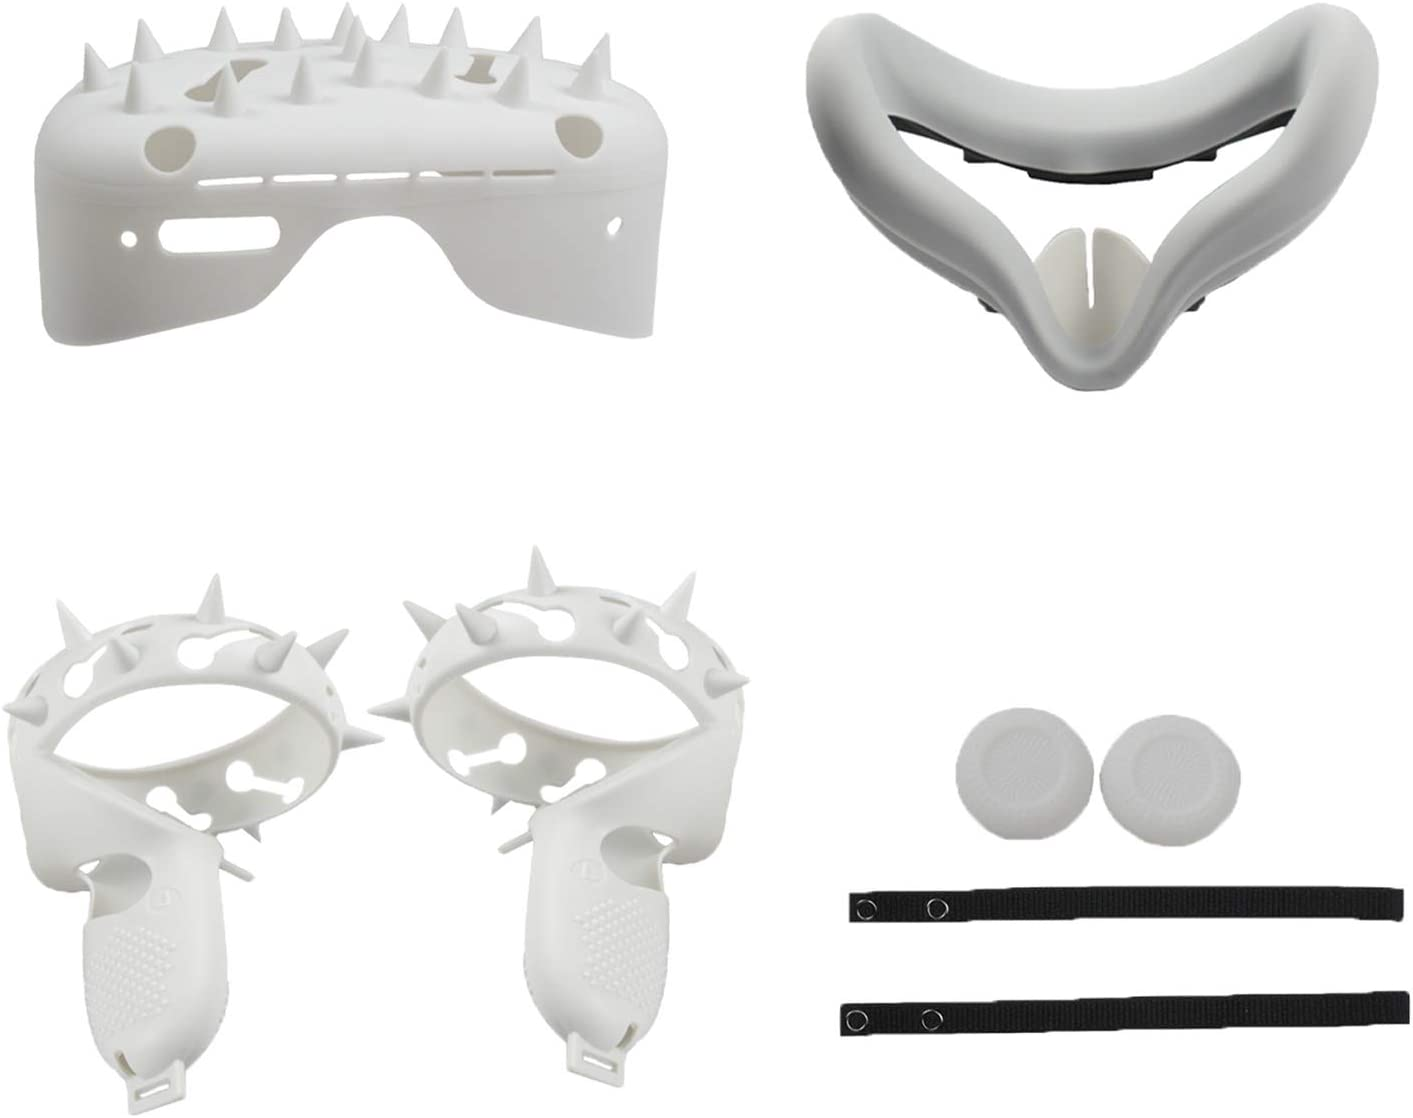 Gazechimp Soft VR Touch Controller Grip Cover for Oculus Quest 2 Headset Pad Cushion Skin Spike Style Shock-Resistant - White